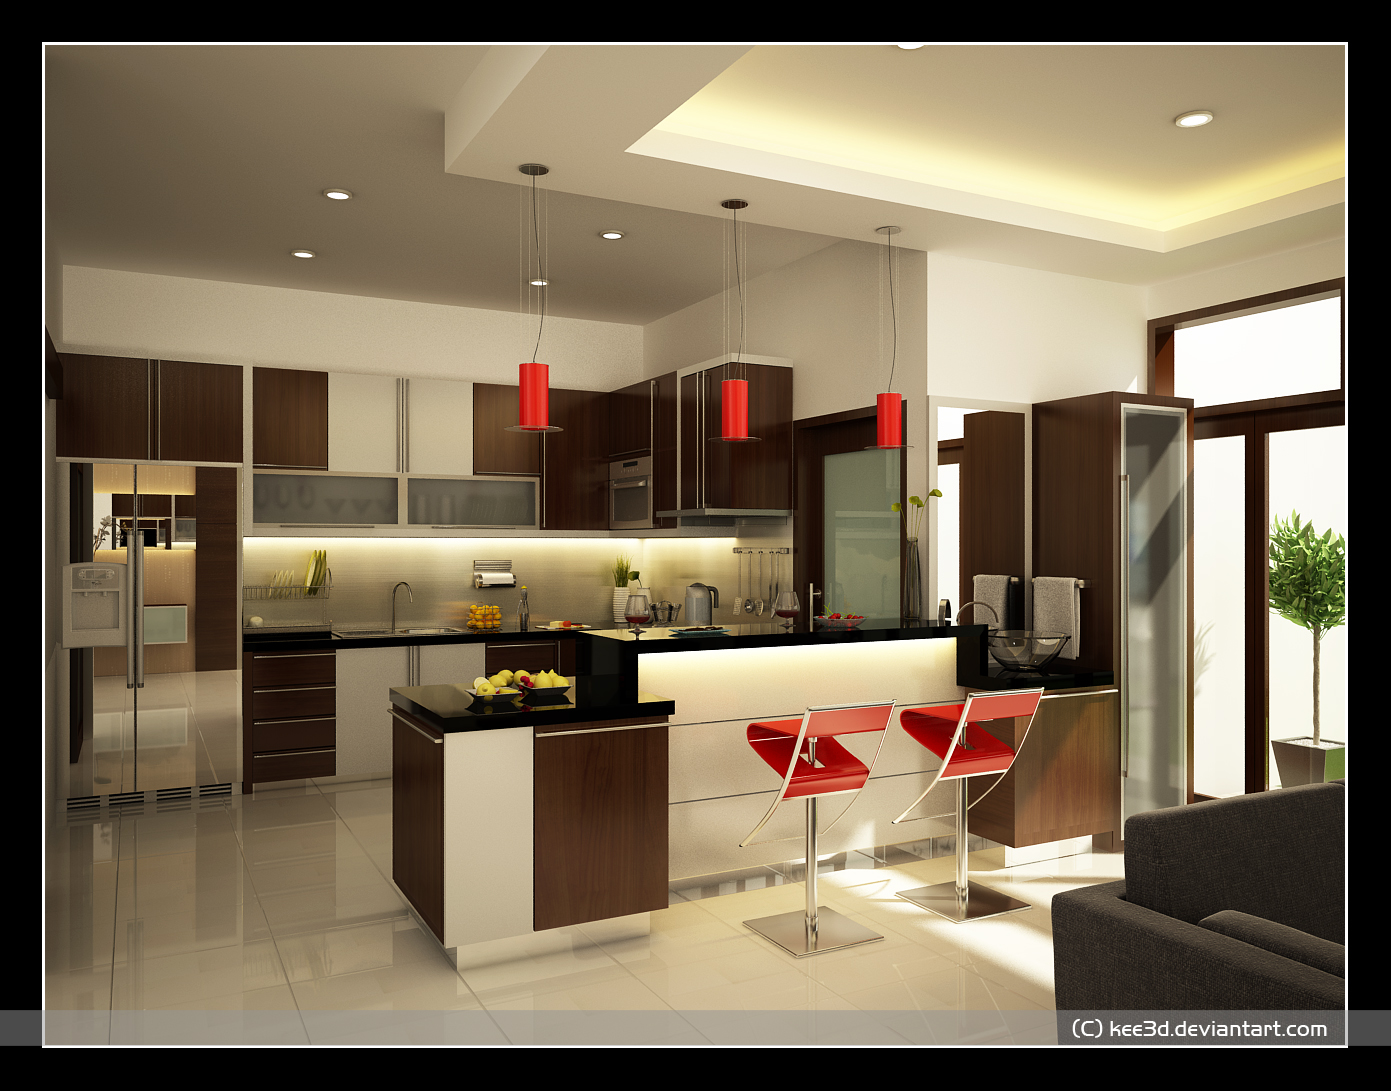 Kitchen design ideas for Remodeling your kitchen ideas